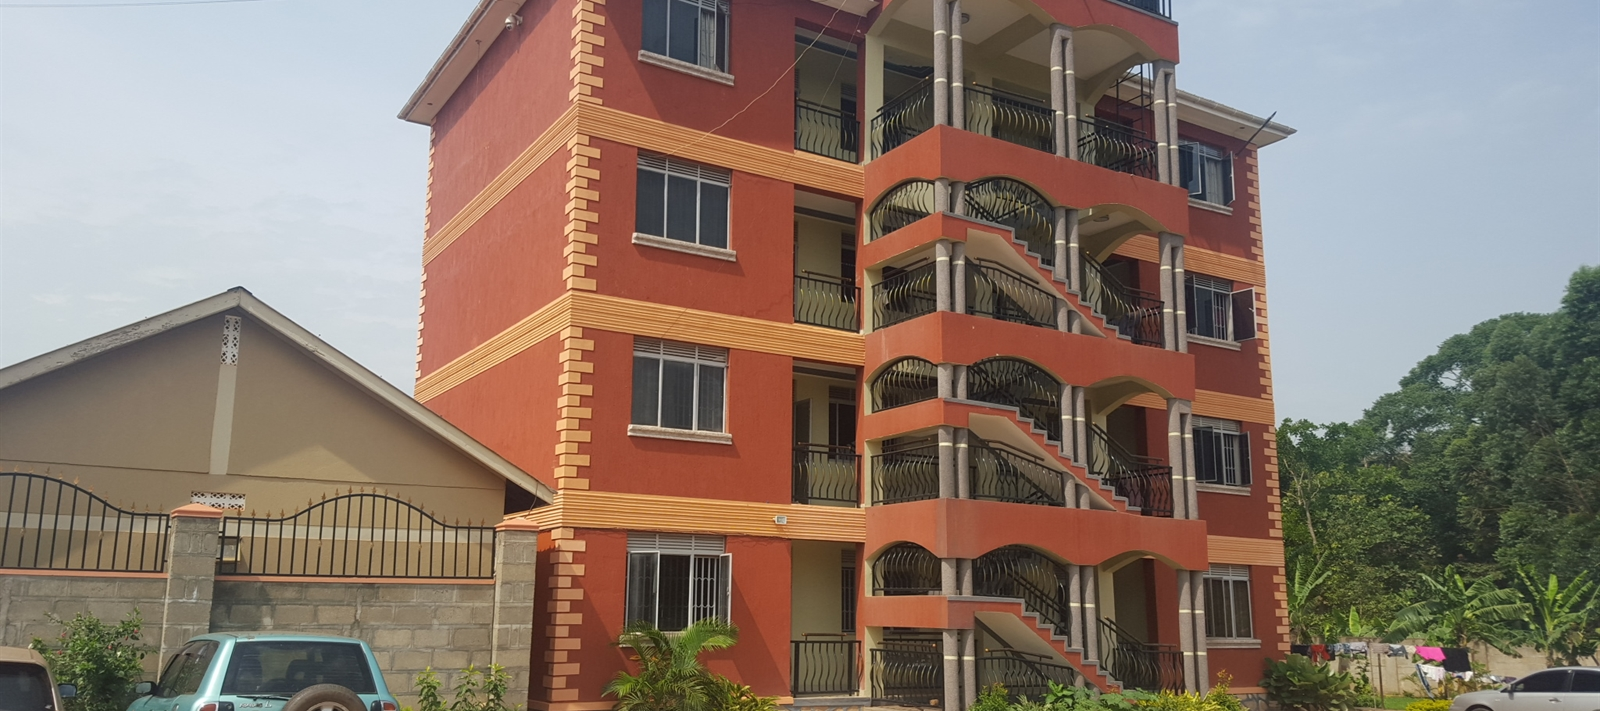 Apartment block managed in Lubowa